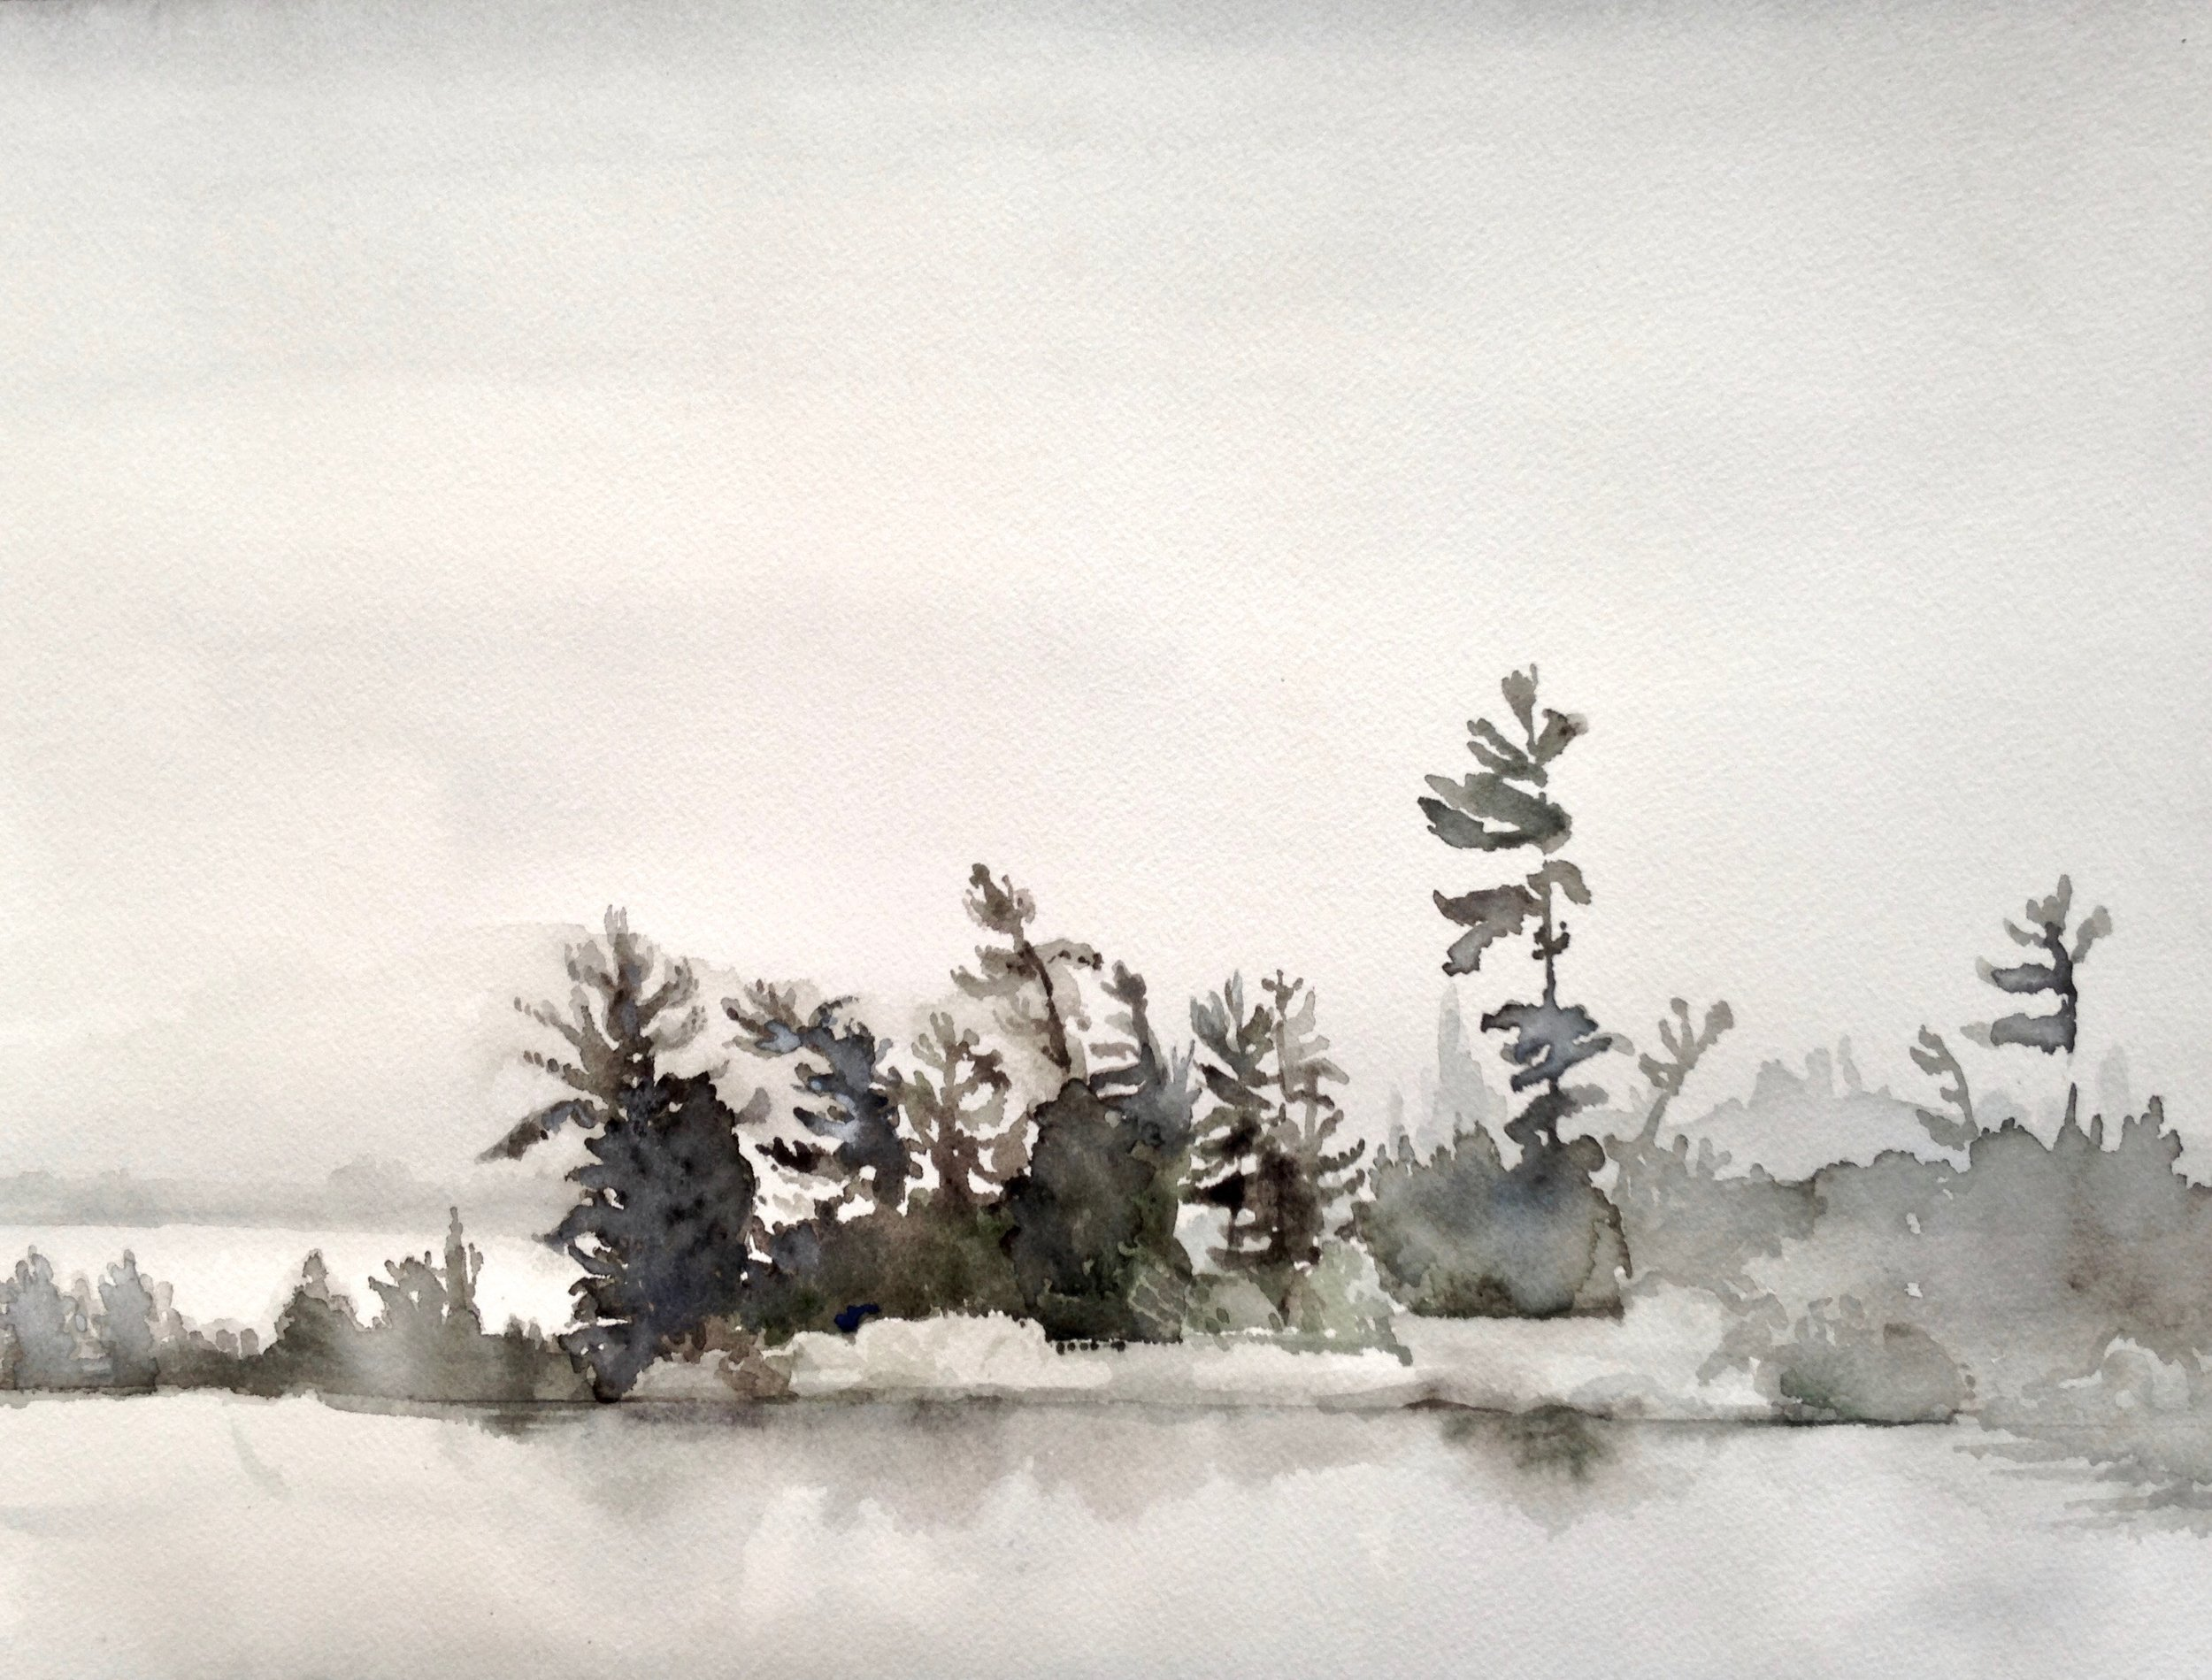 Island Fog, 12 x 16 inches, 2017